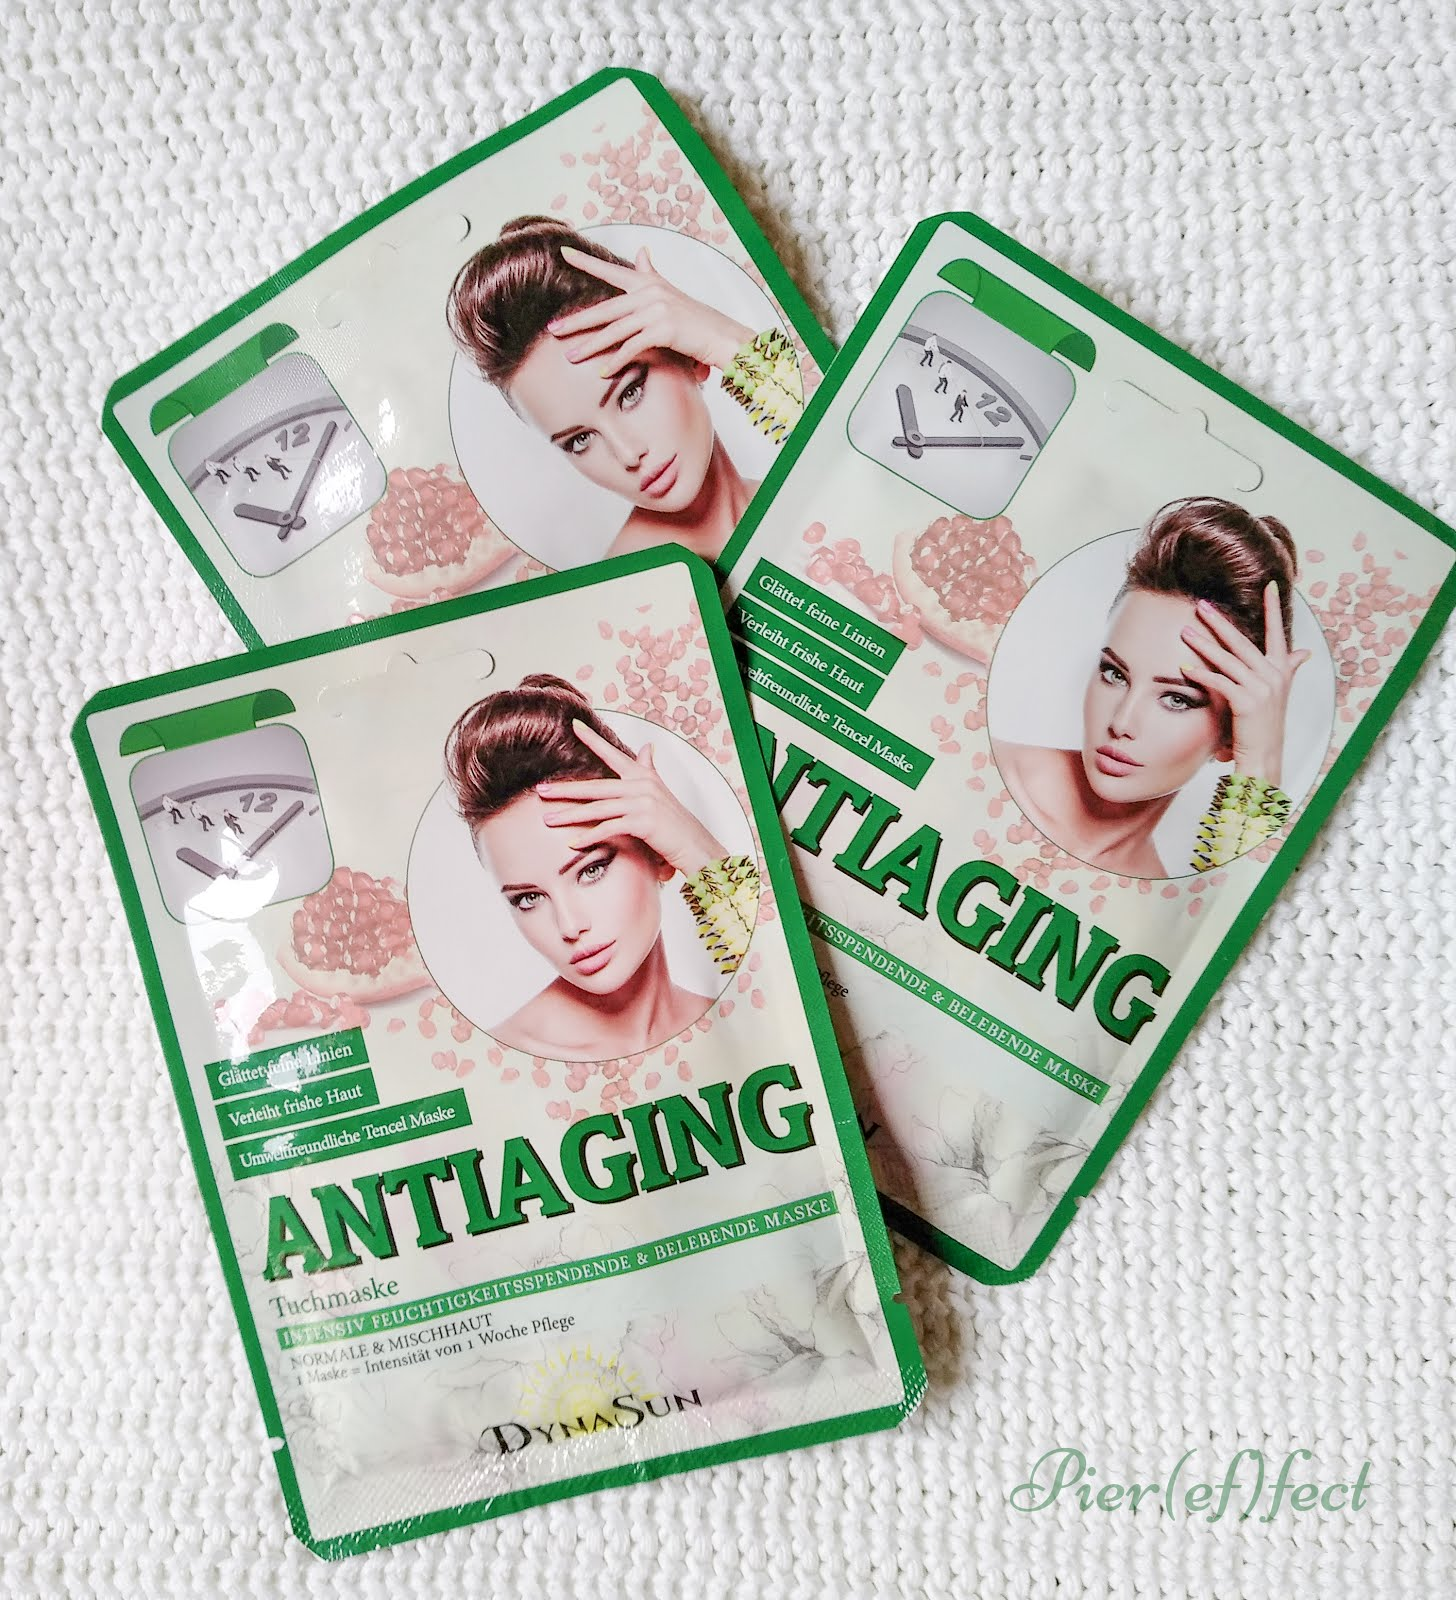 DynaSun Antiaging Mask